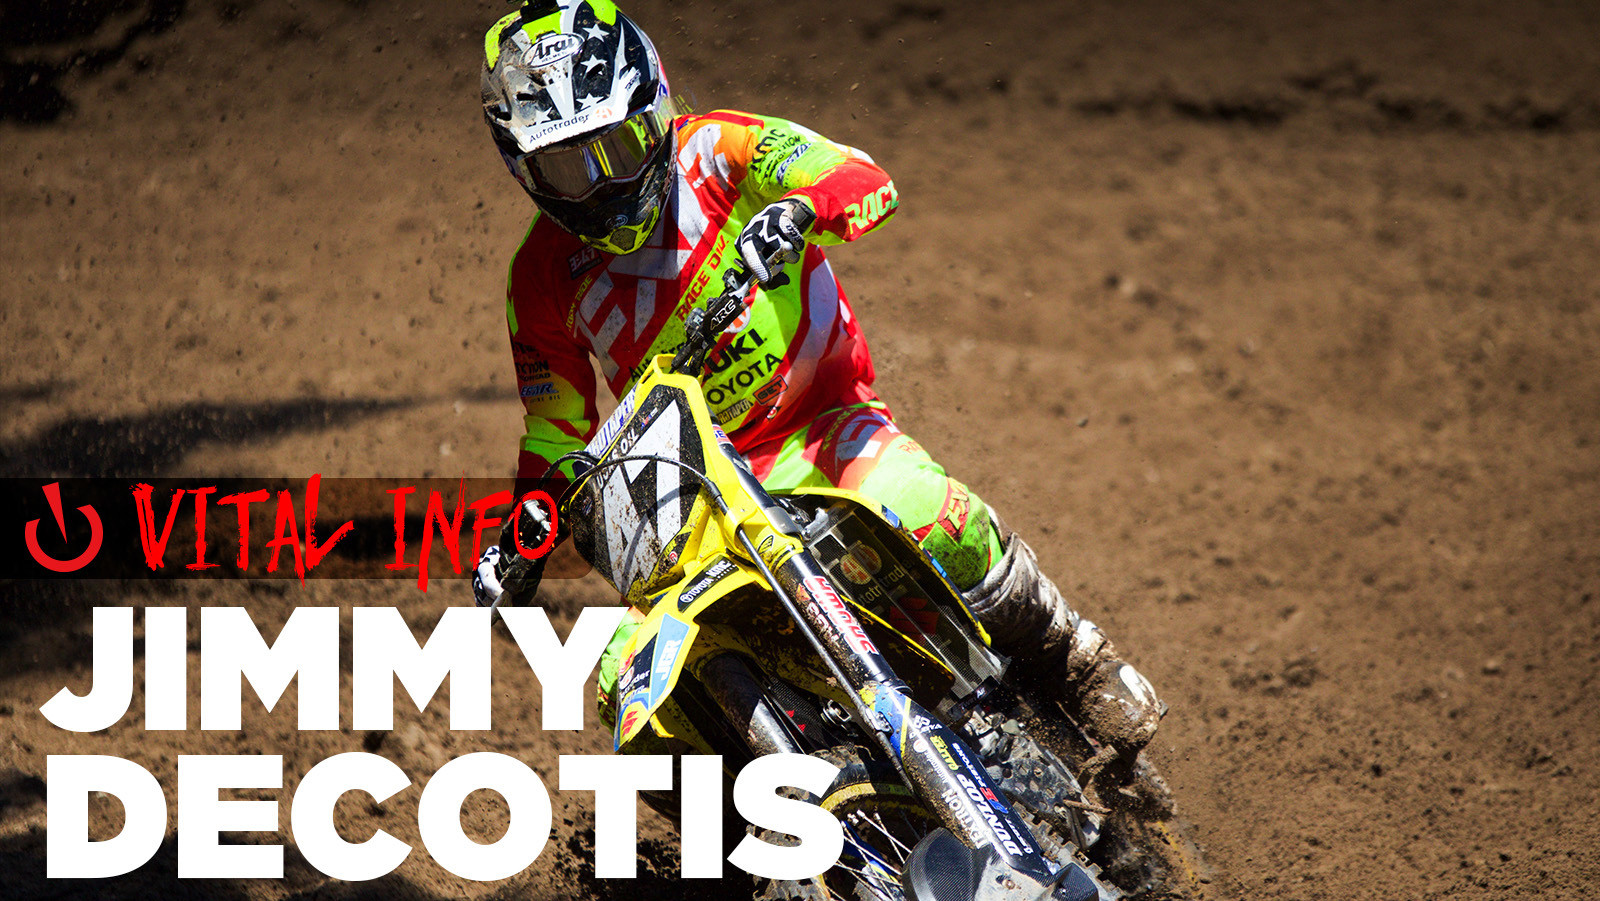 Vital Info: Jimmy Decotis